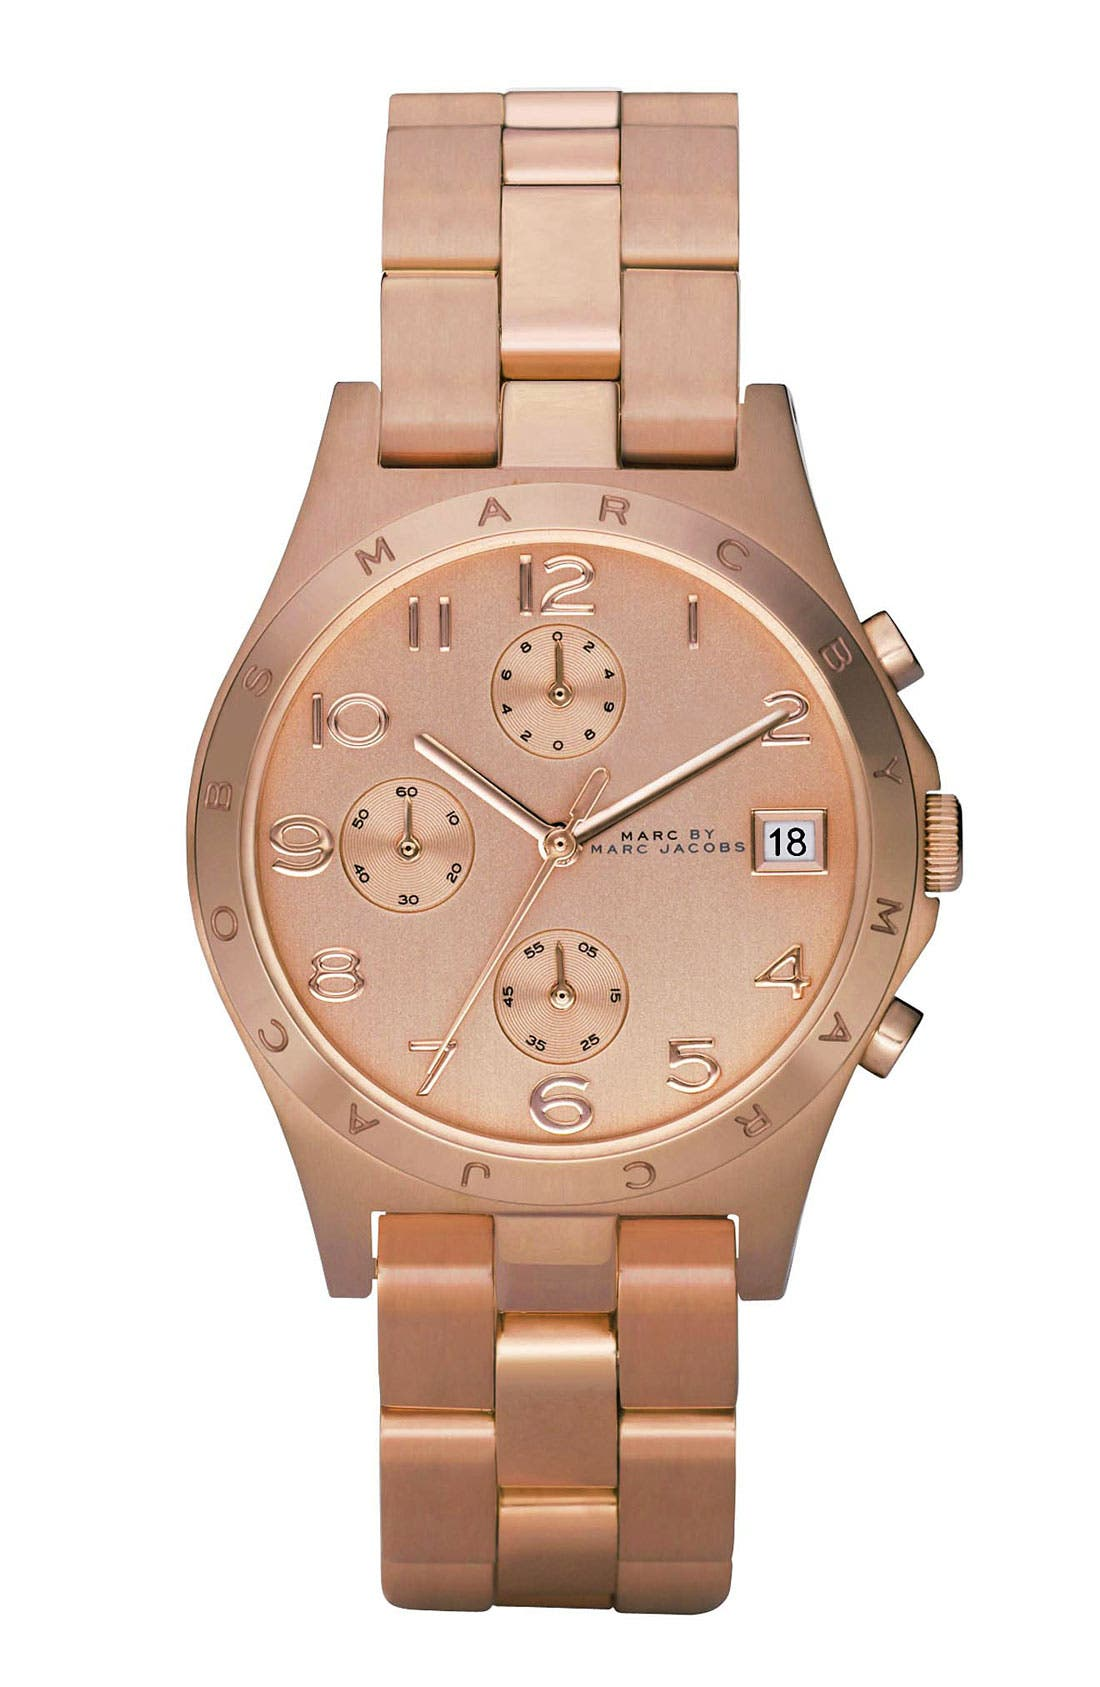 Main Image - MARC JACOBS 'Henry' Chronograph Bracelet Watch, 37mm